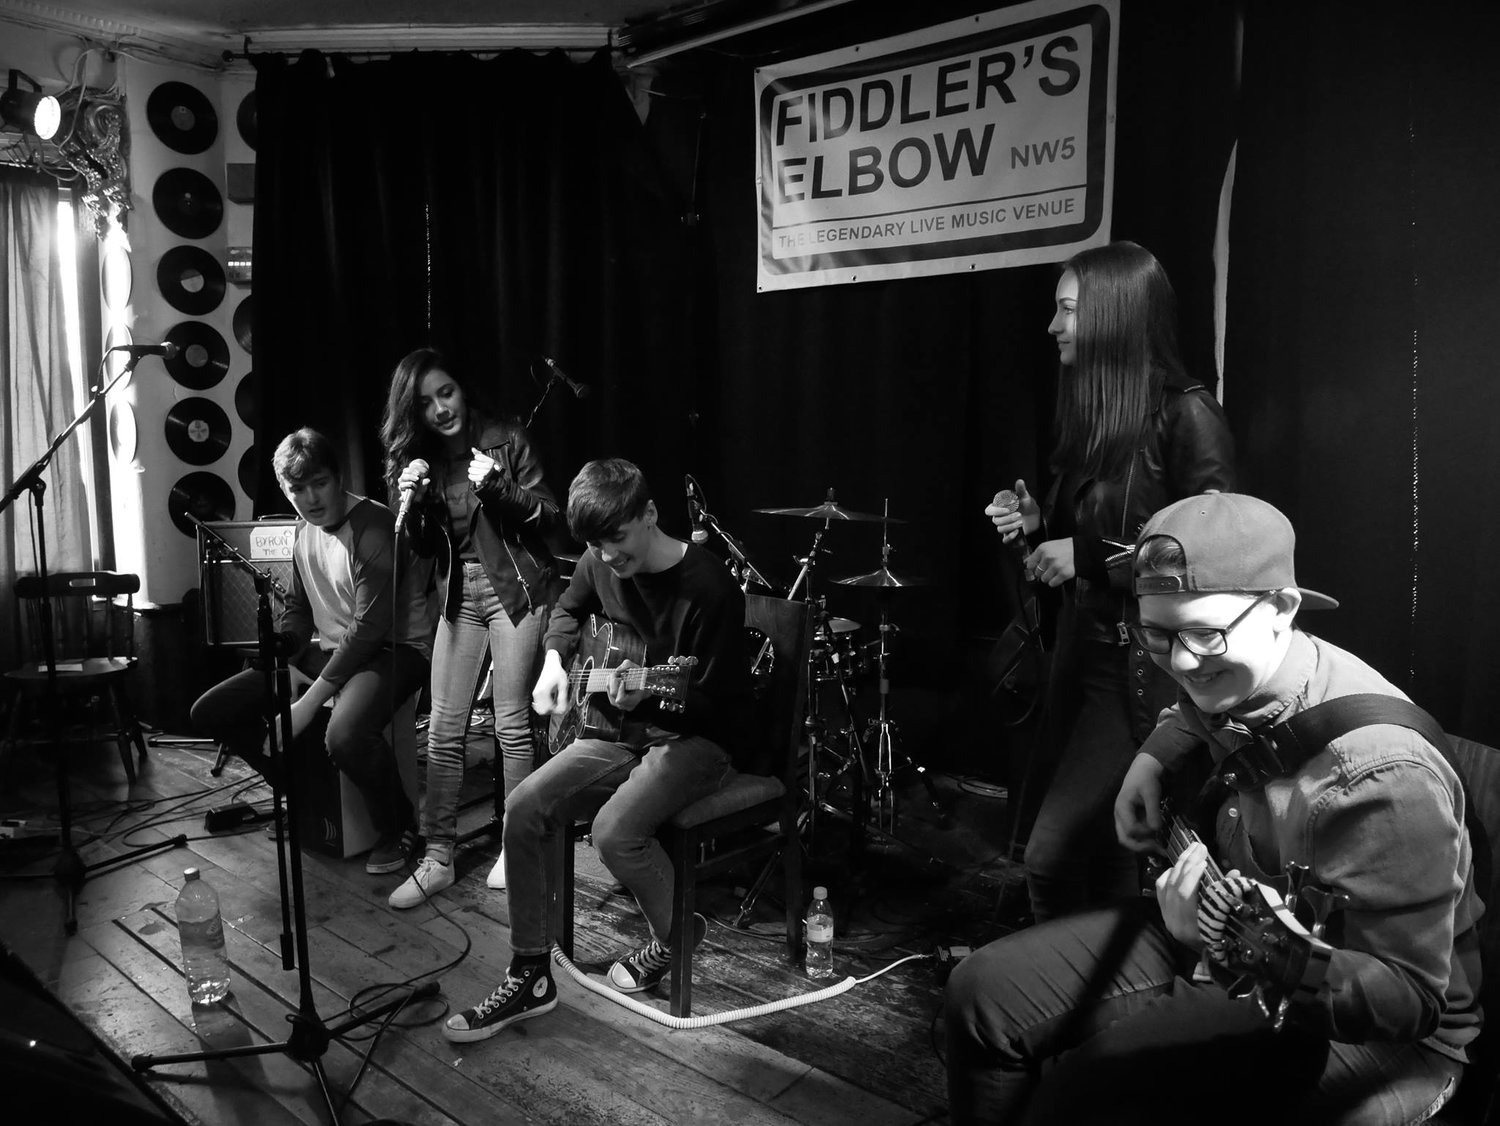 Musicians Of The Future Showcase  -  Access To Music London  at The Fiddler's Elbow promotional image